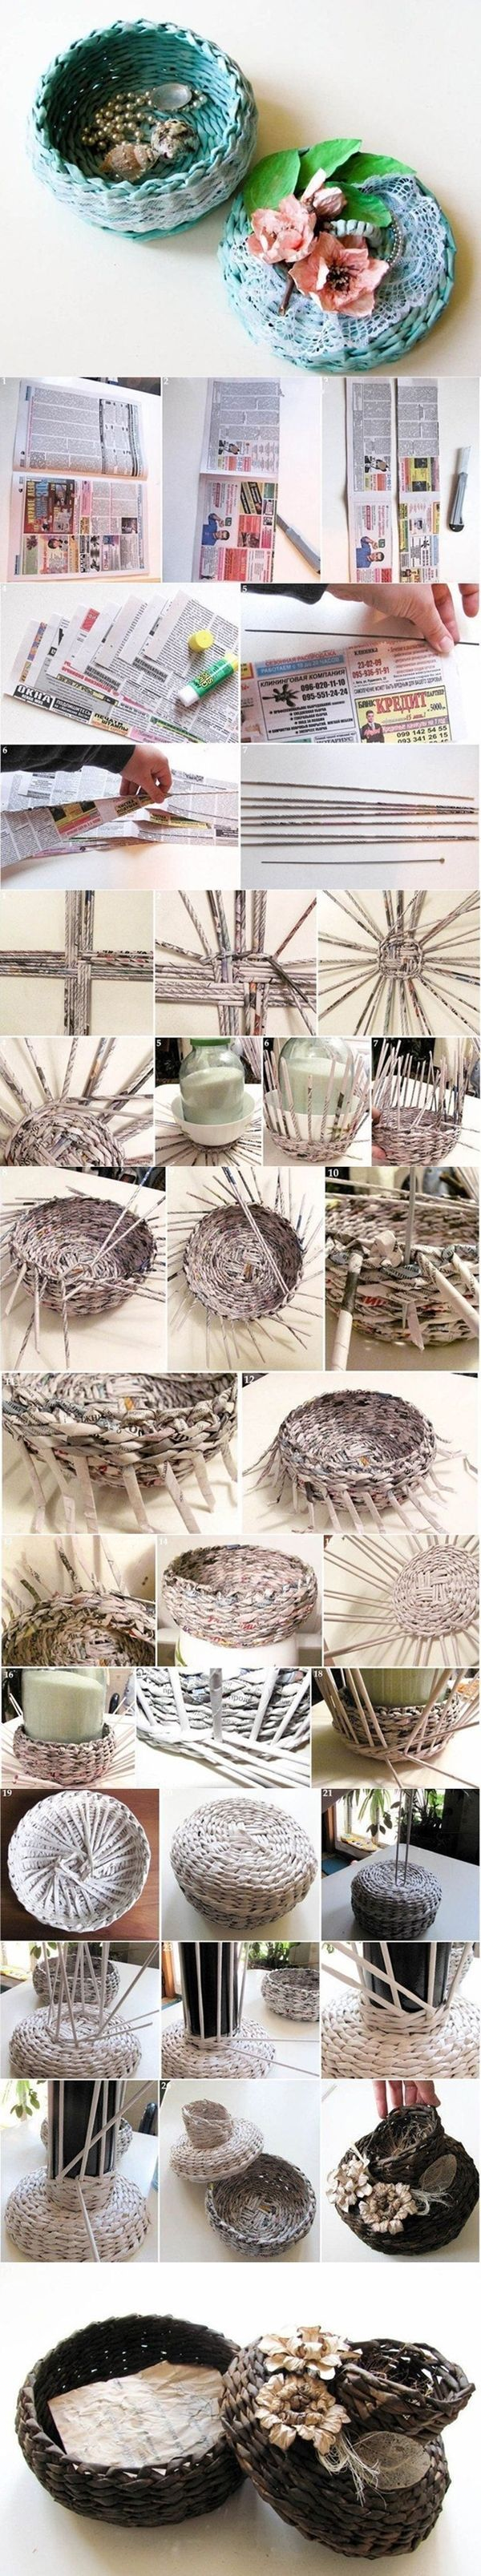 Woven paper craft is a nice way to recycle old newspaper and magazines. Sometimes it can be turned into some useful household stuffs, such as a storage box